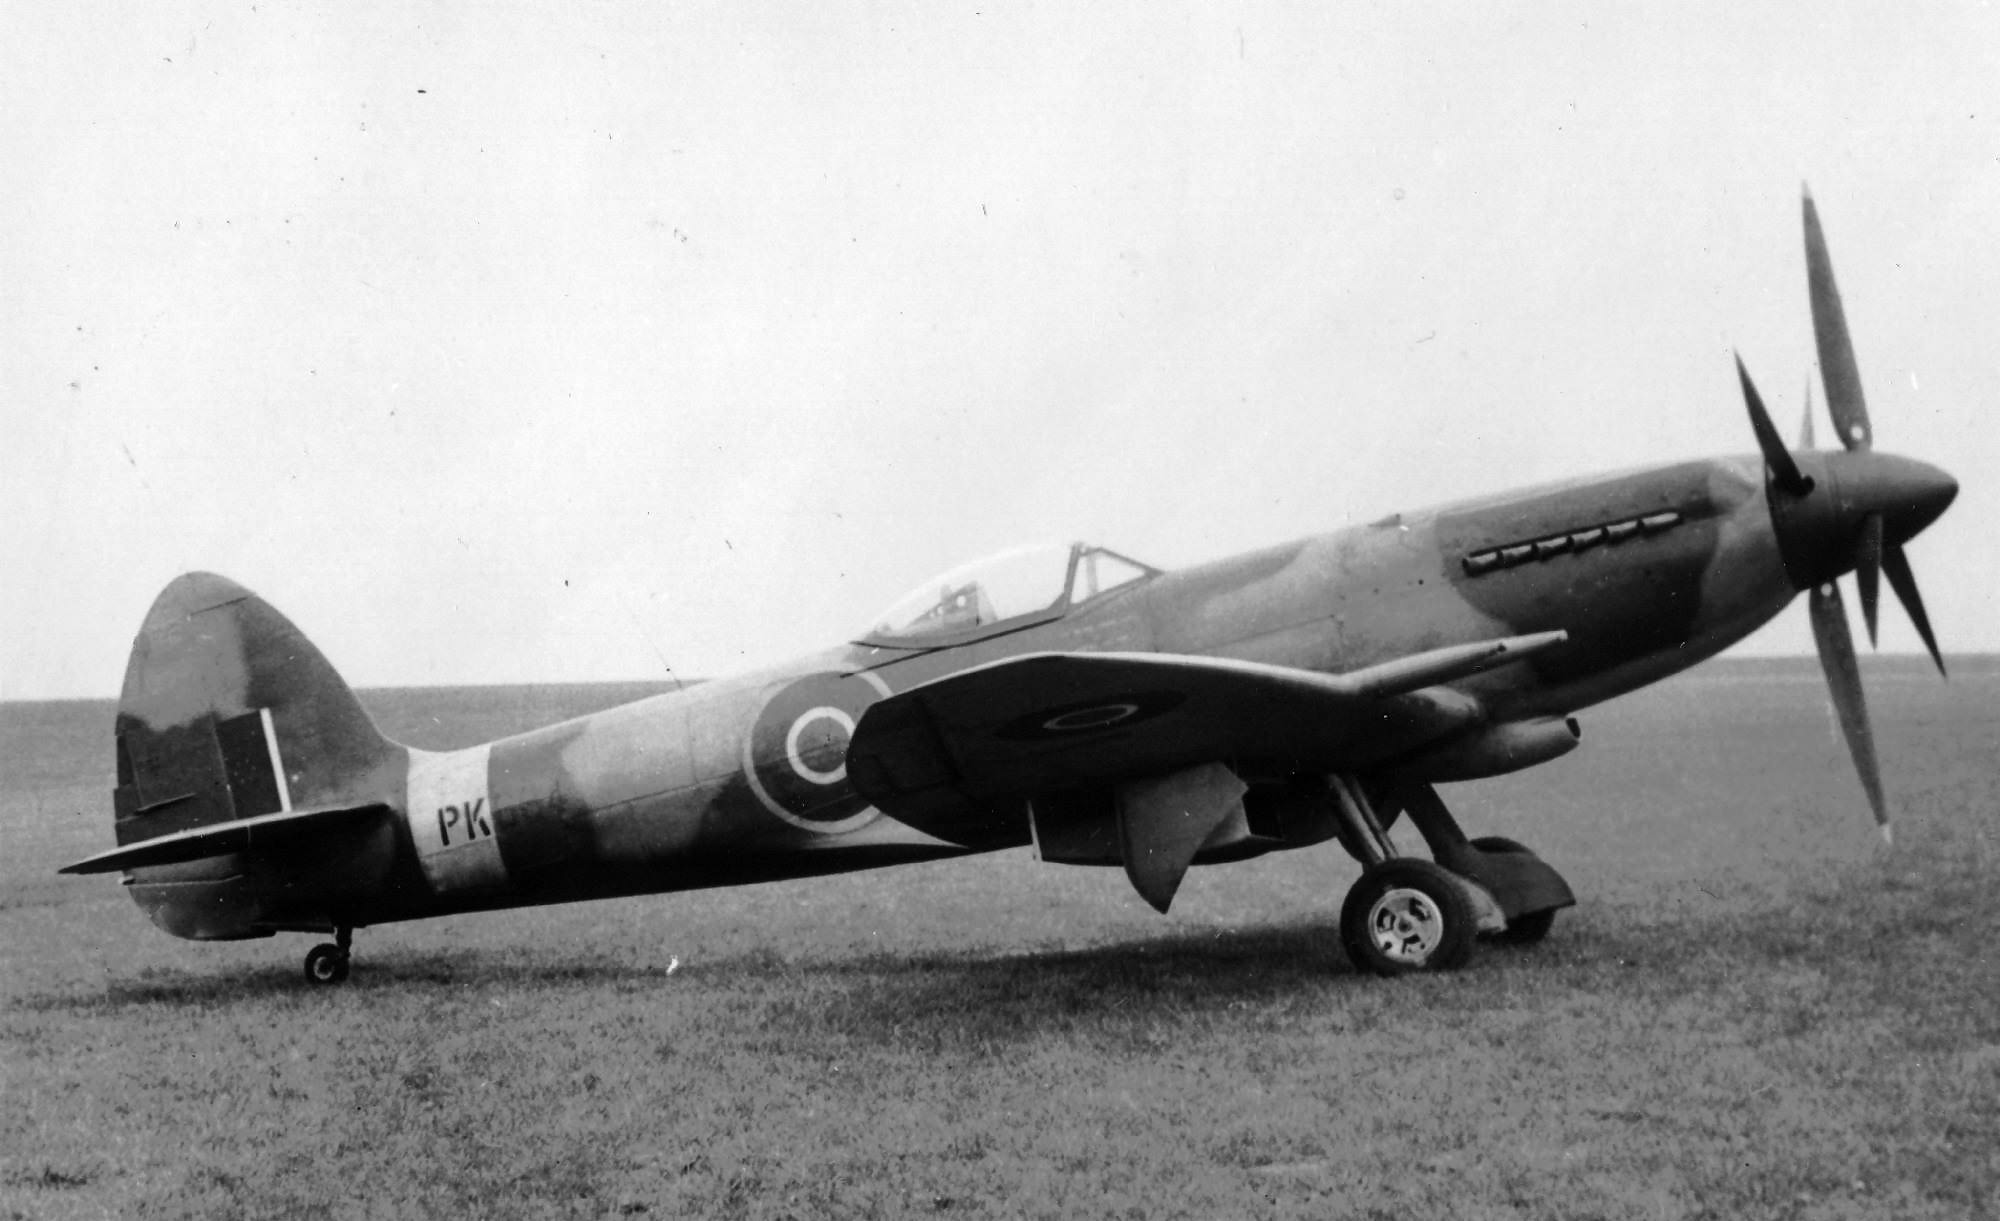 Spitfire Mk24 serial PK684 on the ground